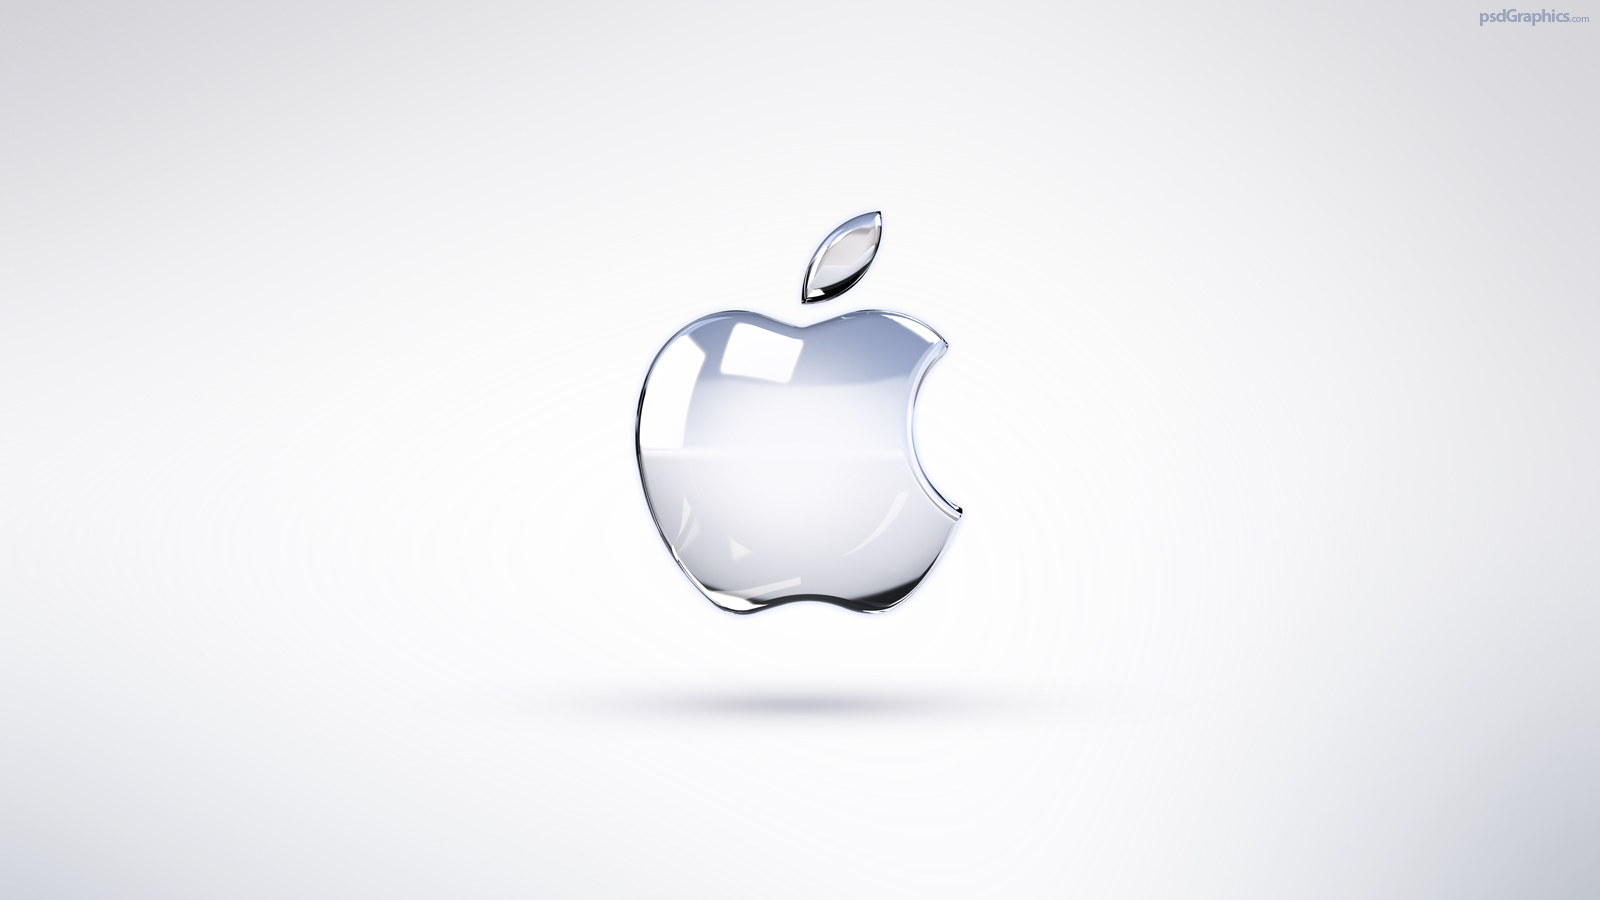 16 Apple Icon Wallpaper Images